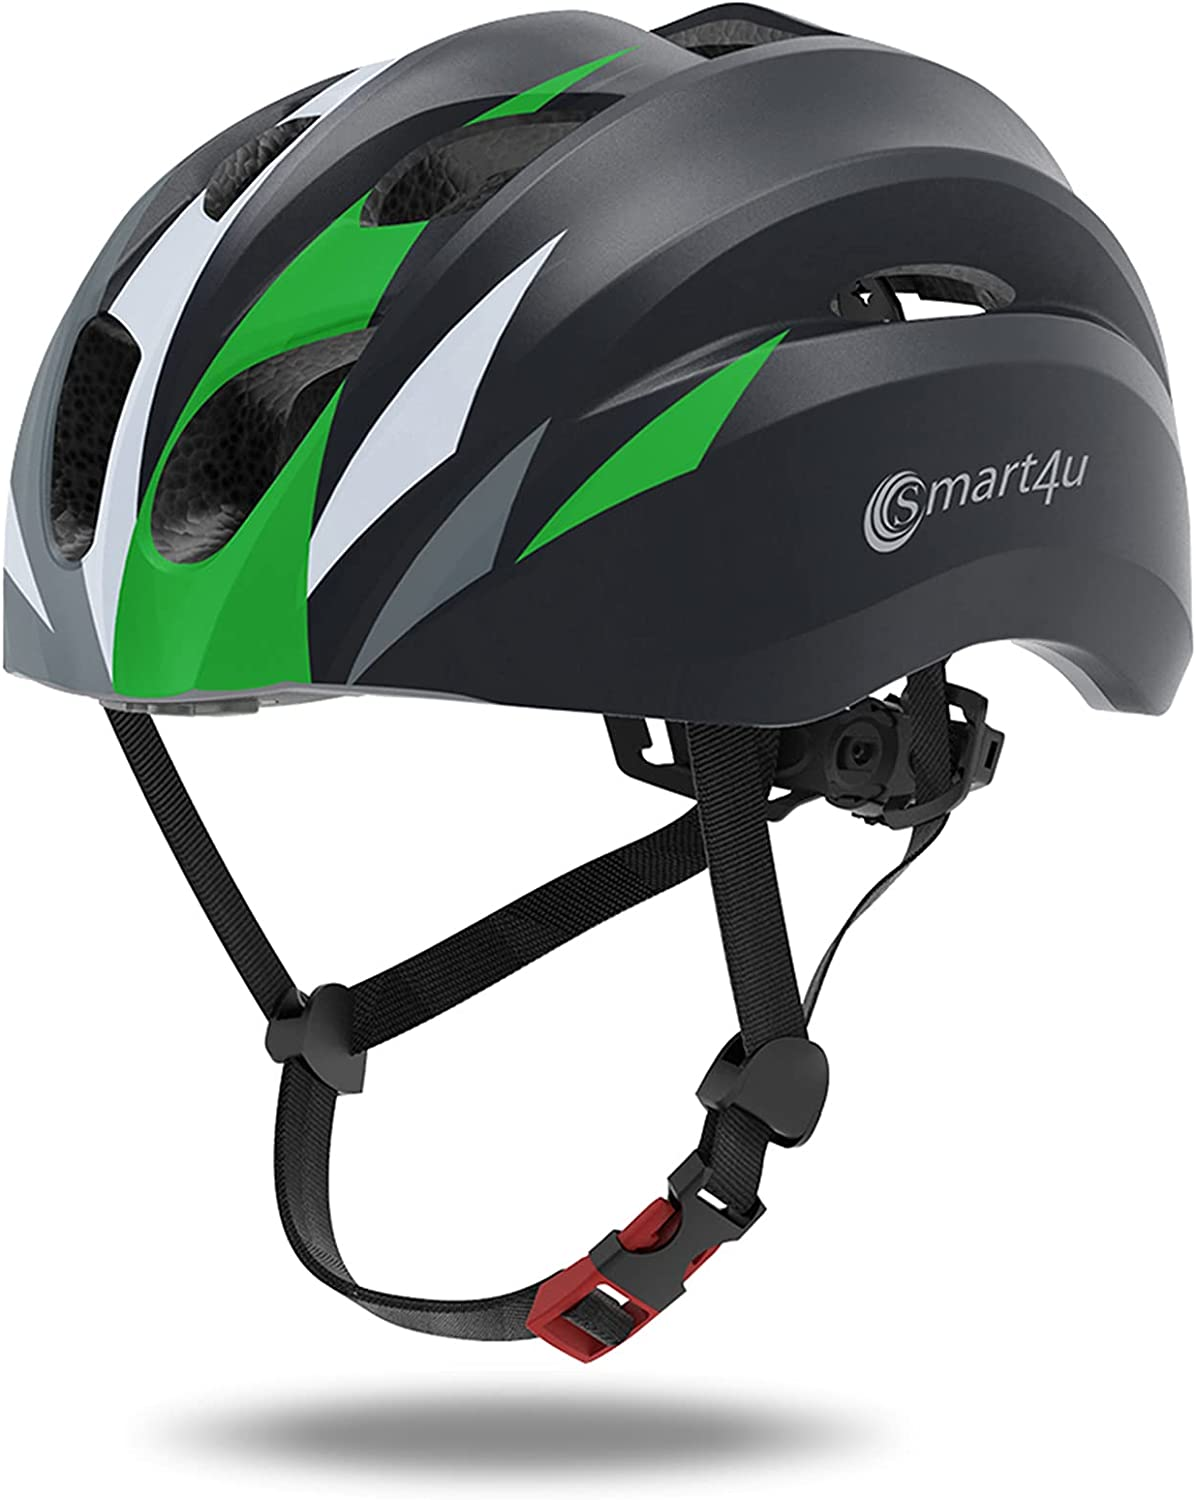 Smart4u SH20 Super beauty product restock quality Max 47% OFF top Smart Bike Helmet Music Connection for Bluetooth a